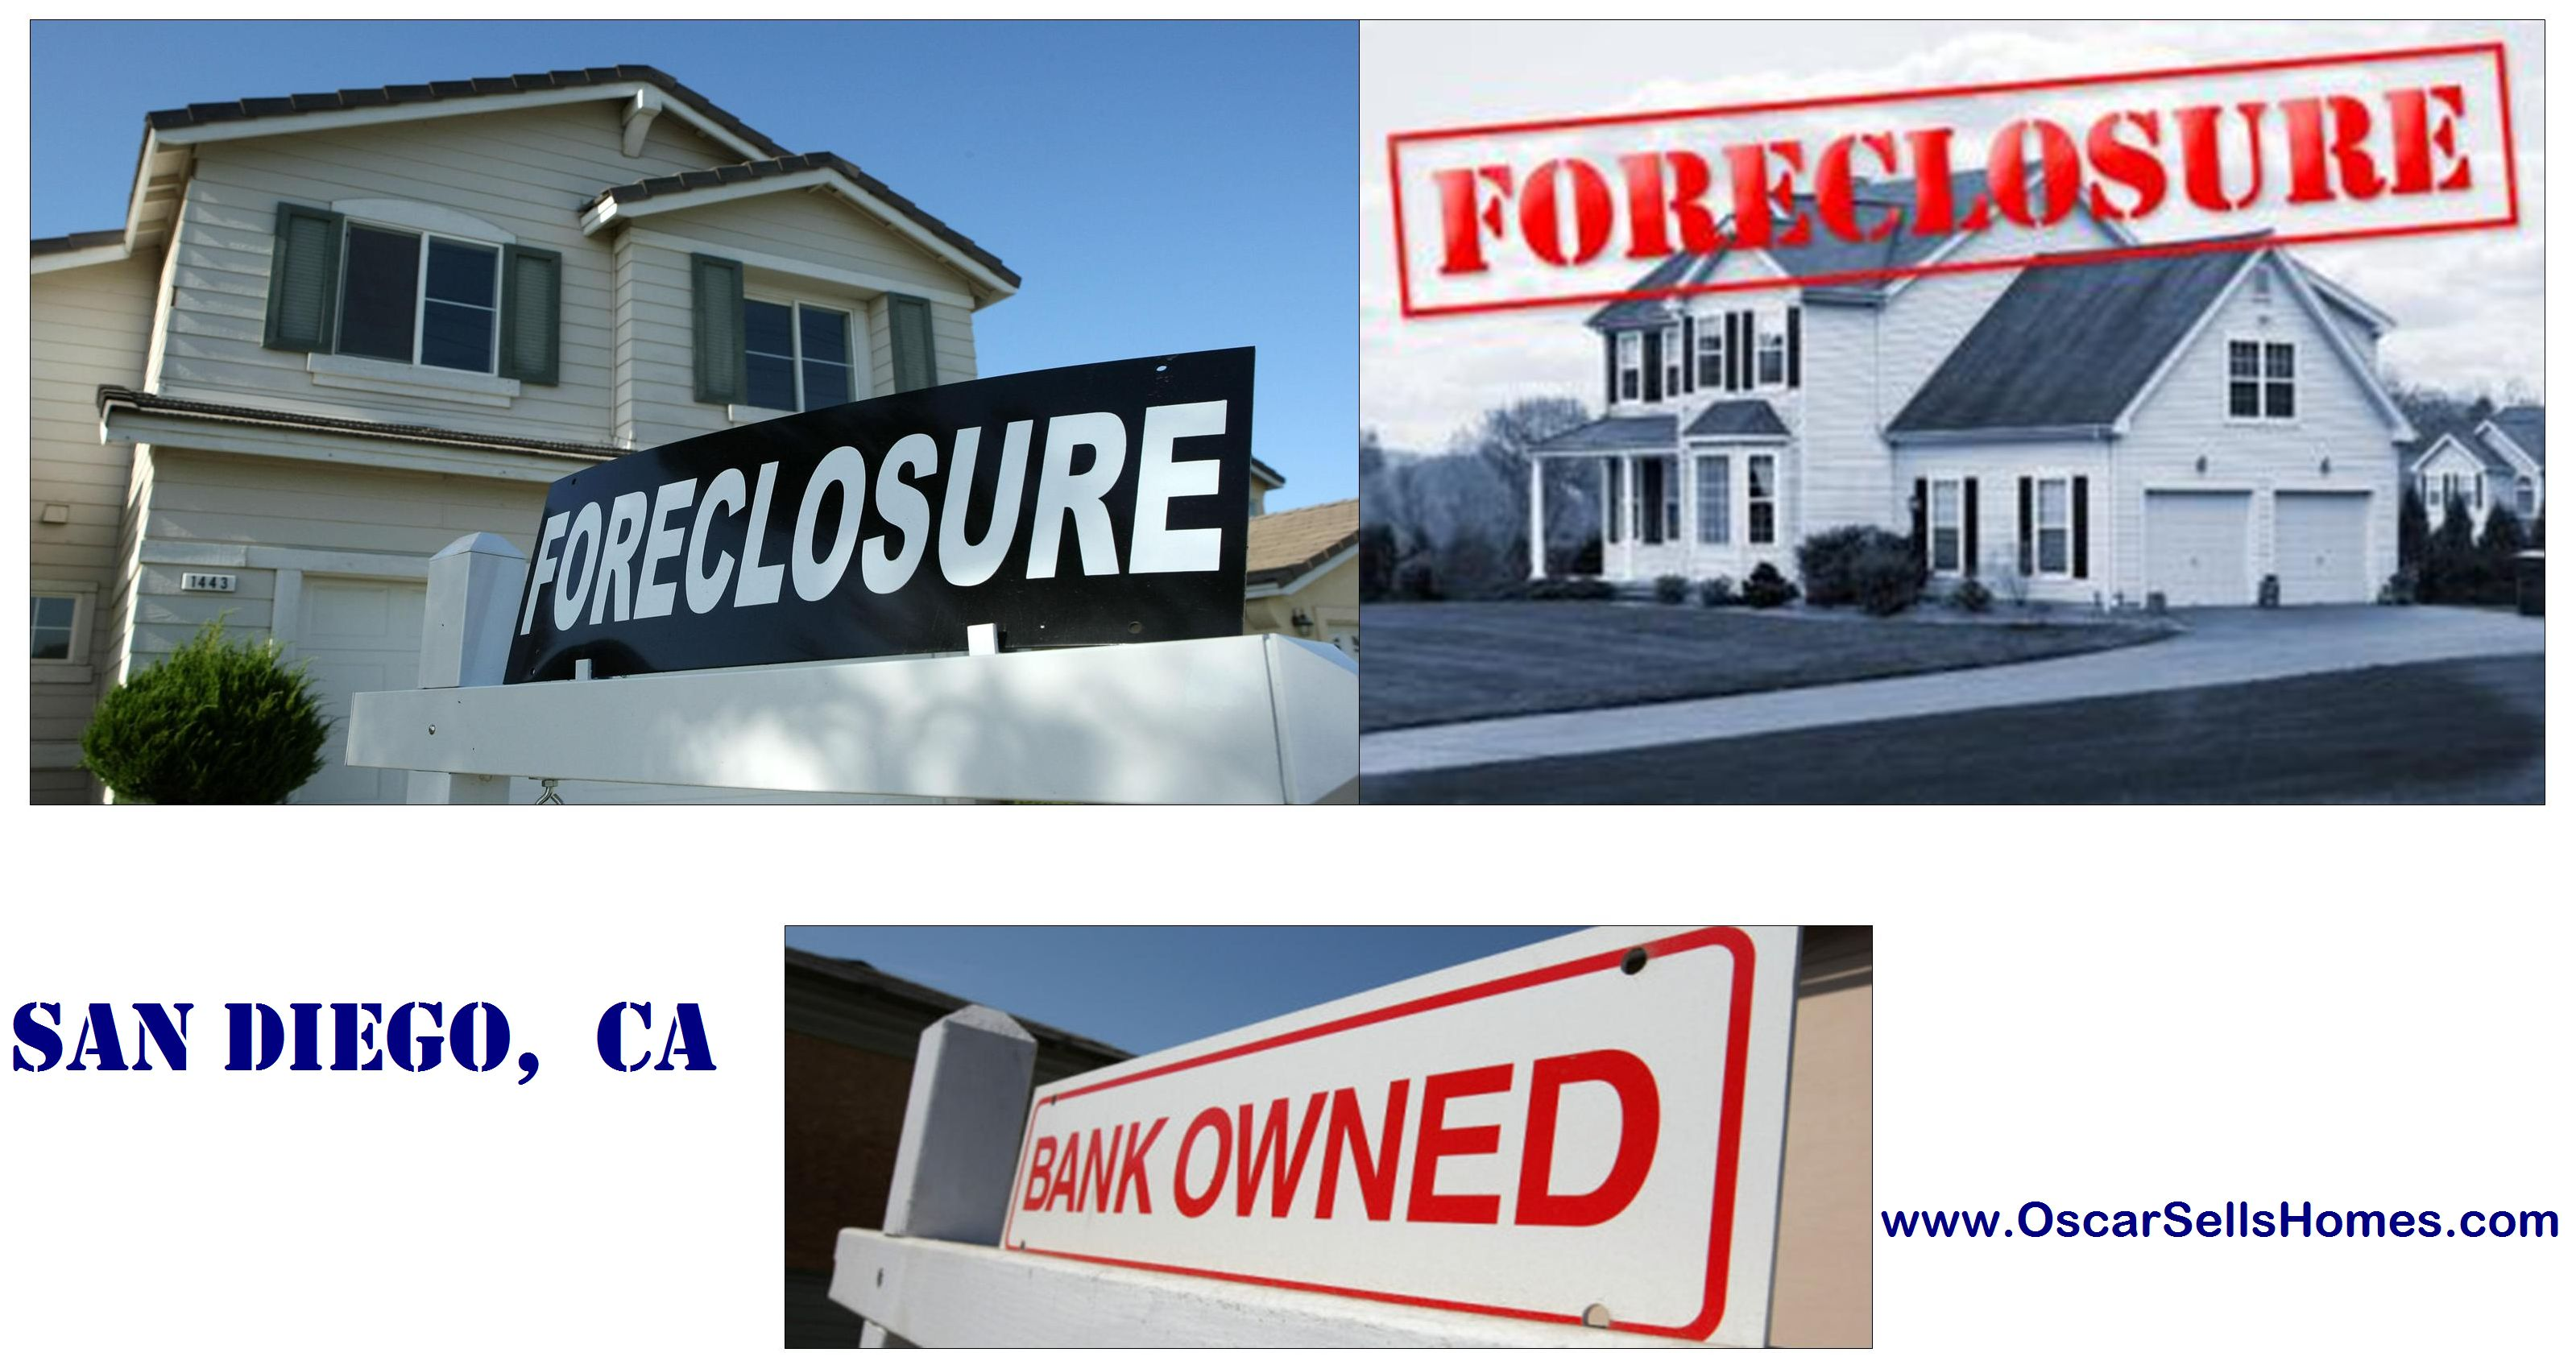 Foreclosed Bank Owned Homes - Oscar Castillo:  Broker Associate REALTOR - San Diego